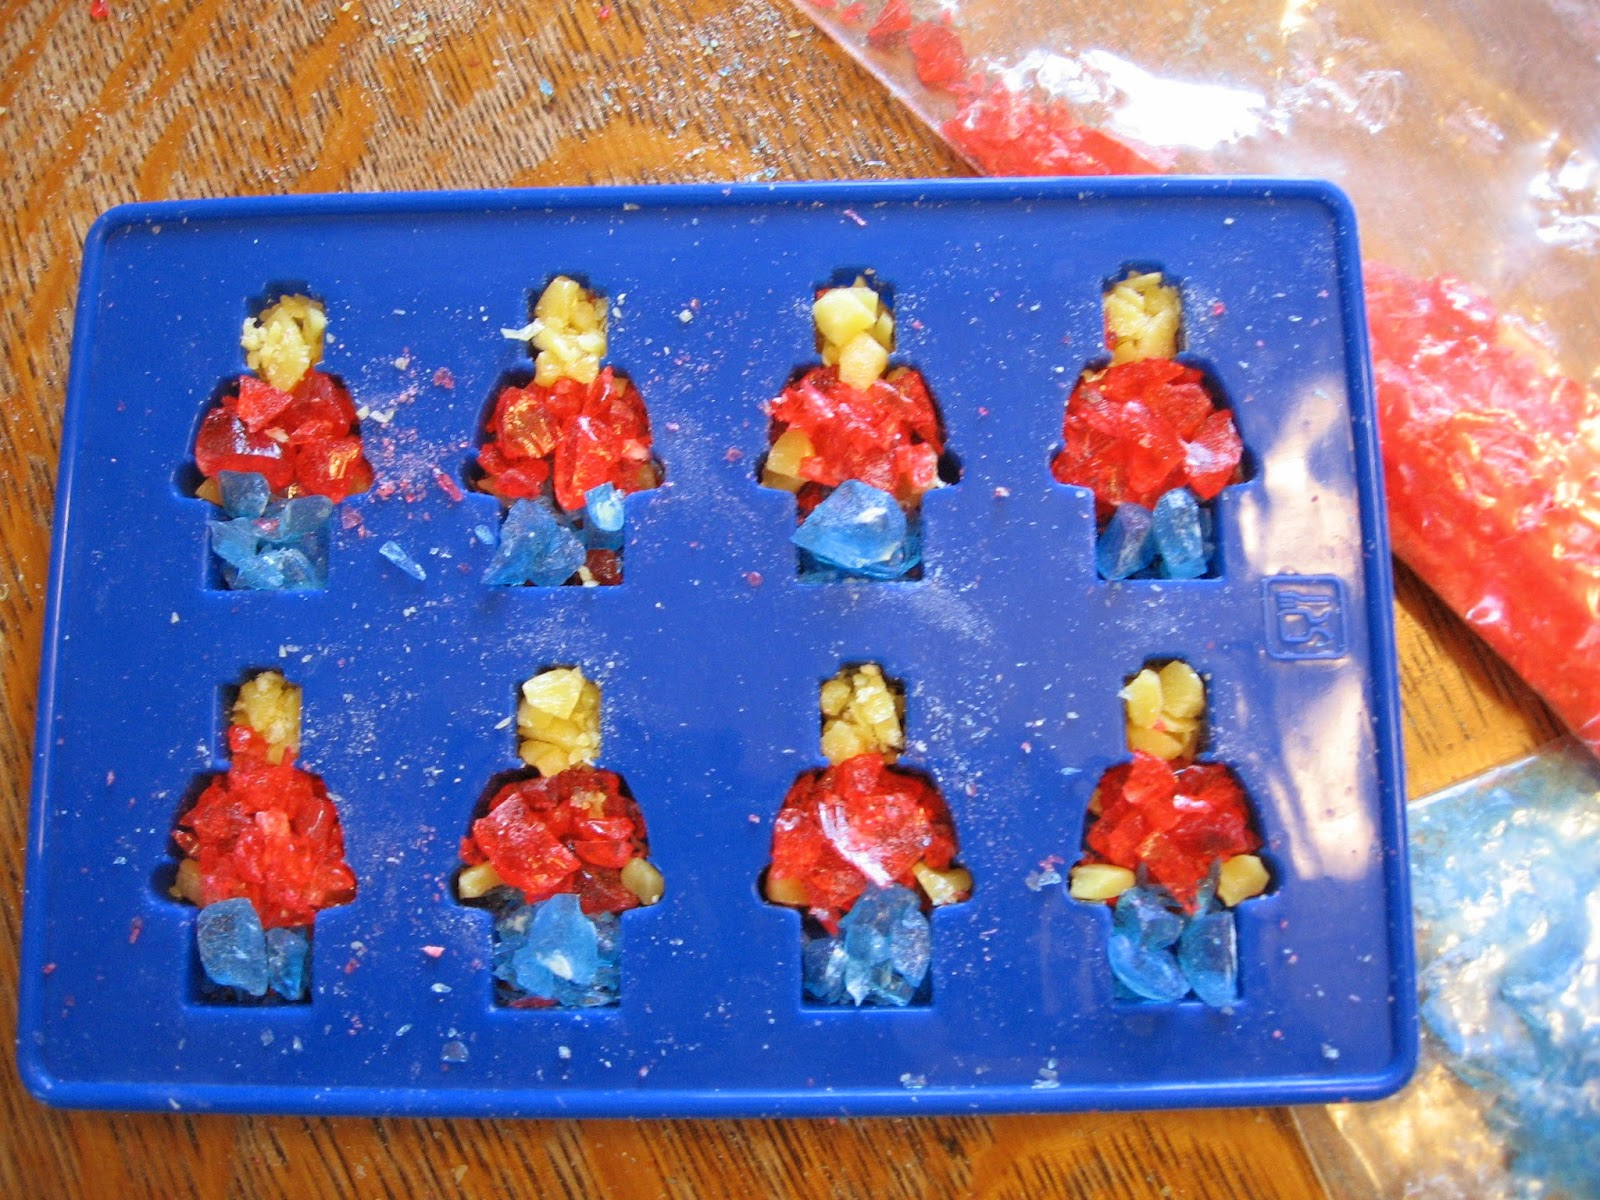 Our First Batch Of Men Looked A Little Like Murder Victims As We Had Allowed Small Bits The Red Candy To Mix In With Yellow While Were Filling